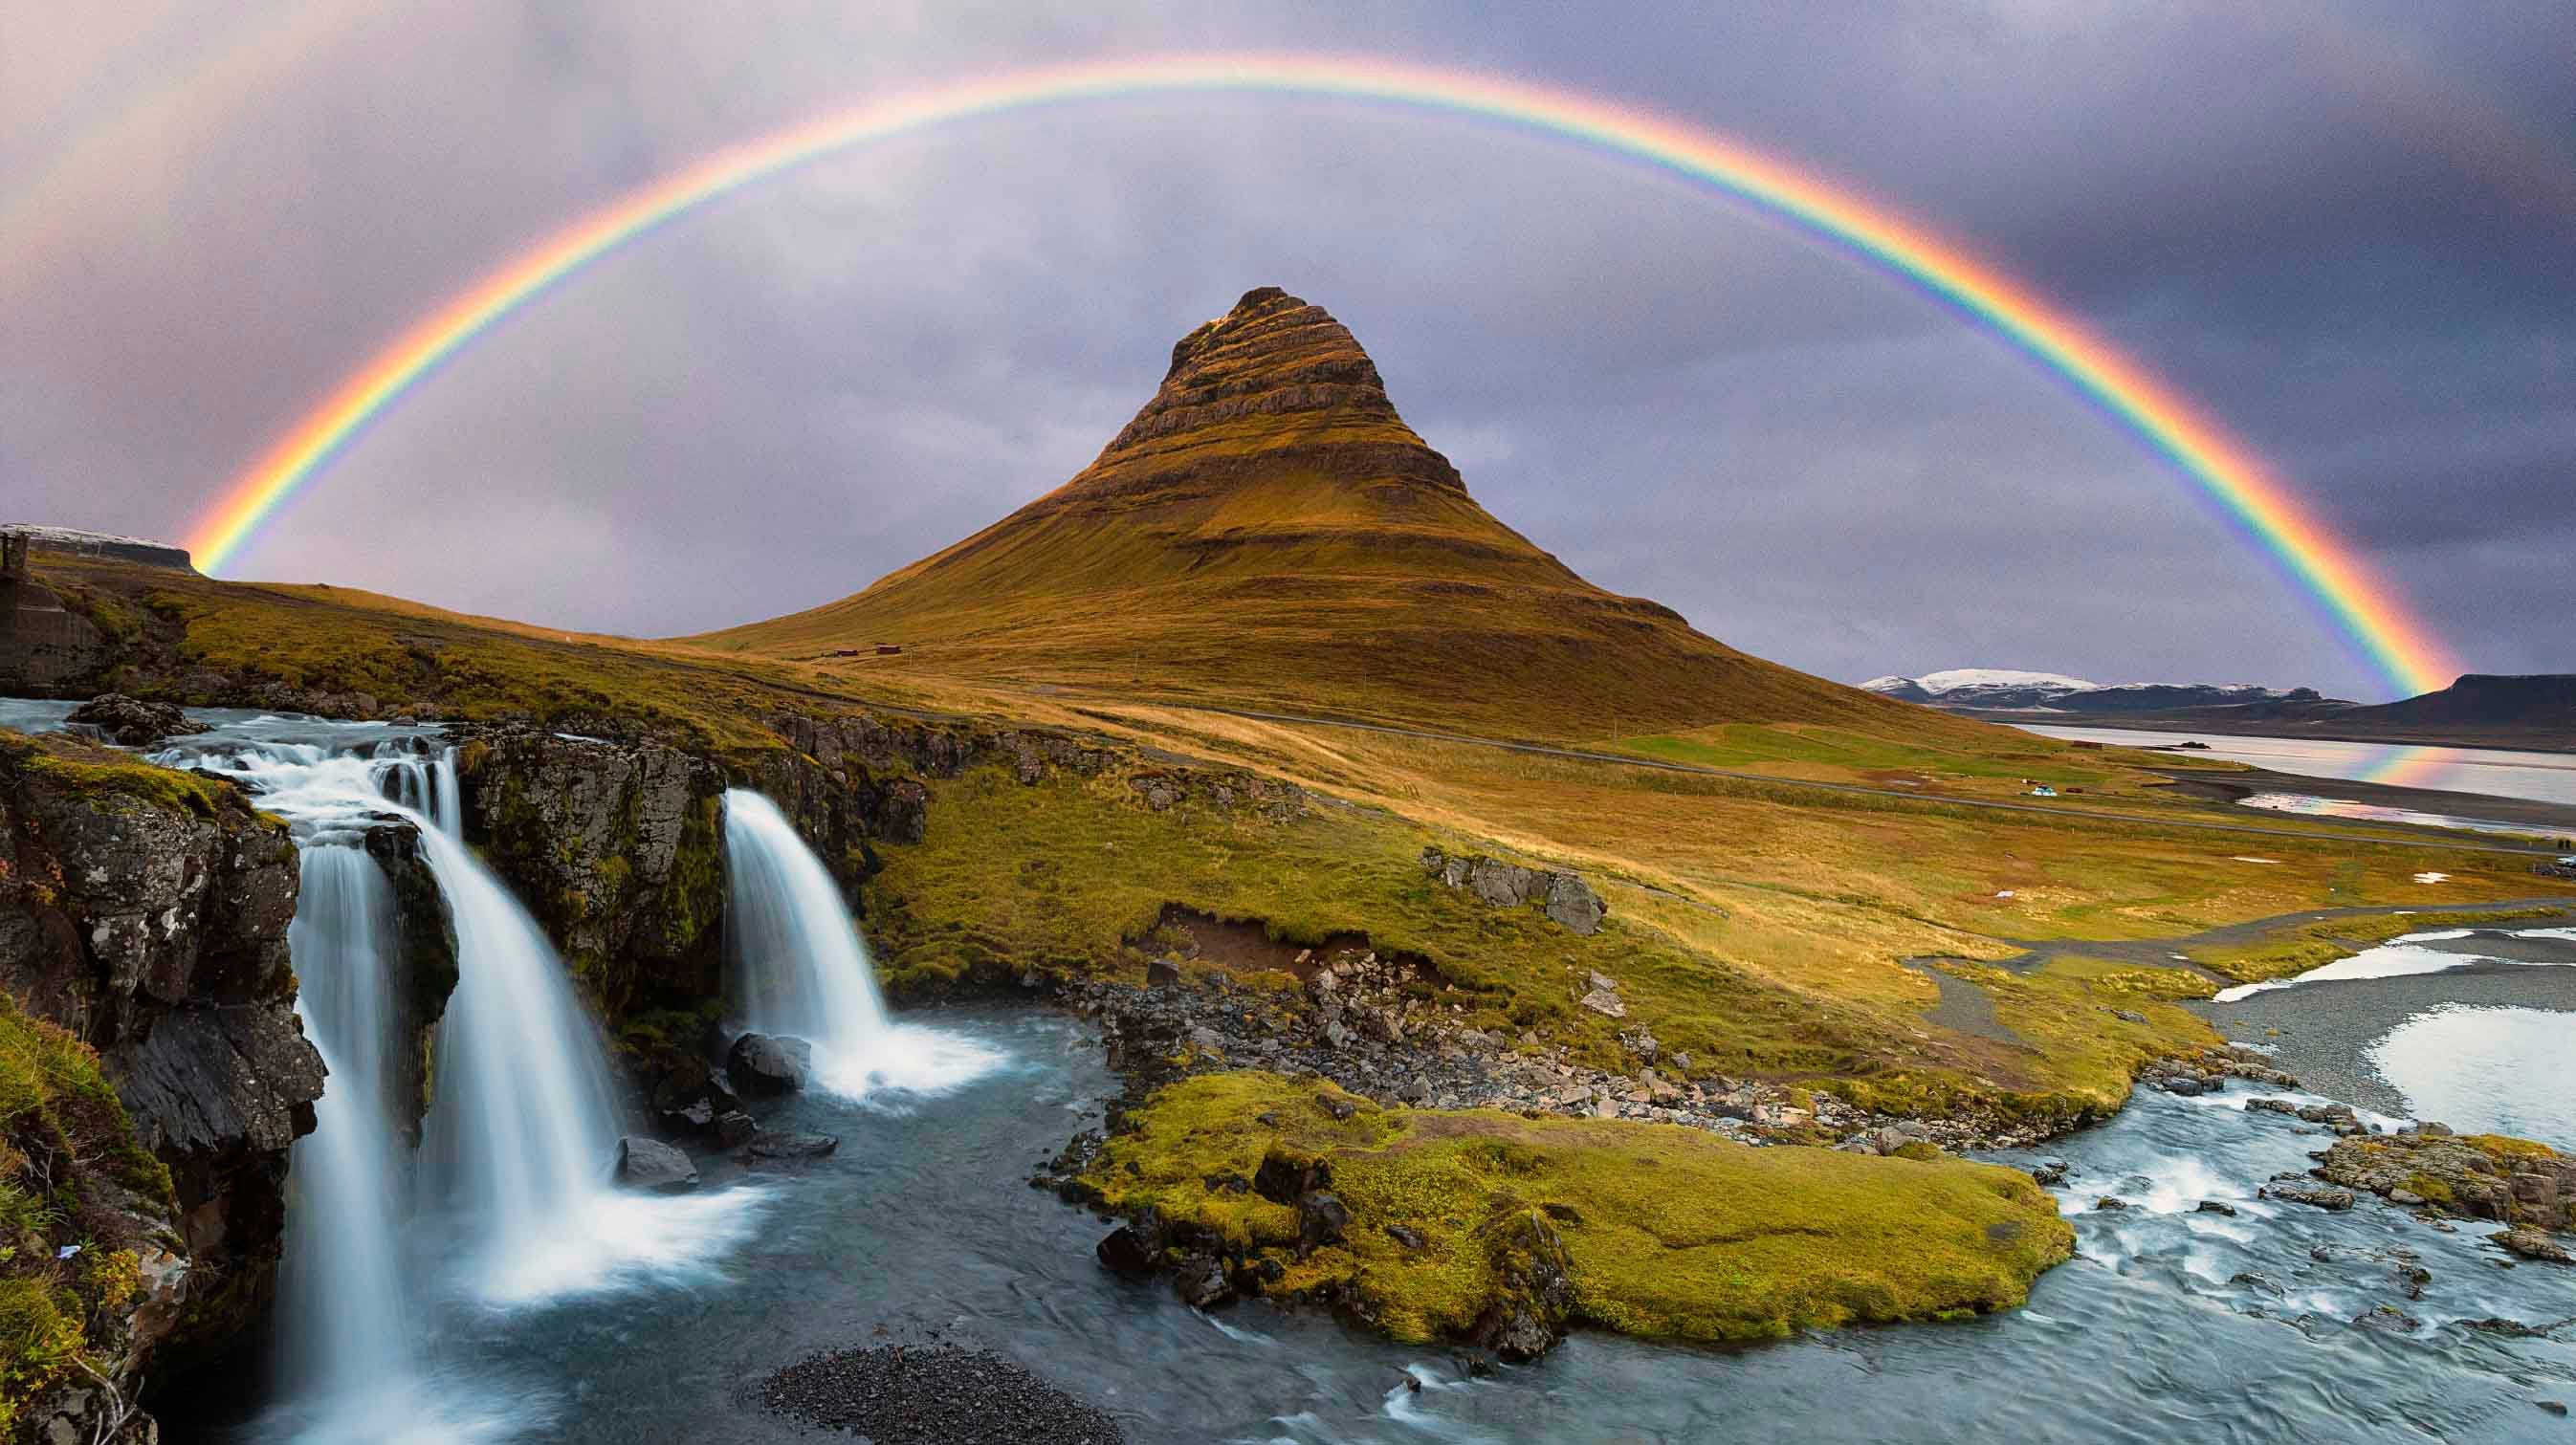 """Rainbow"" comes from the Latin arcus pluvius, meaning ""rainy arch."""